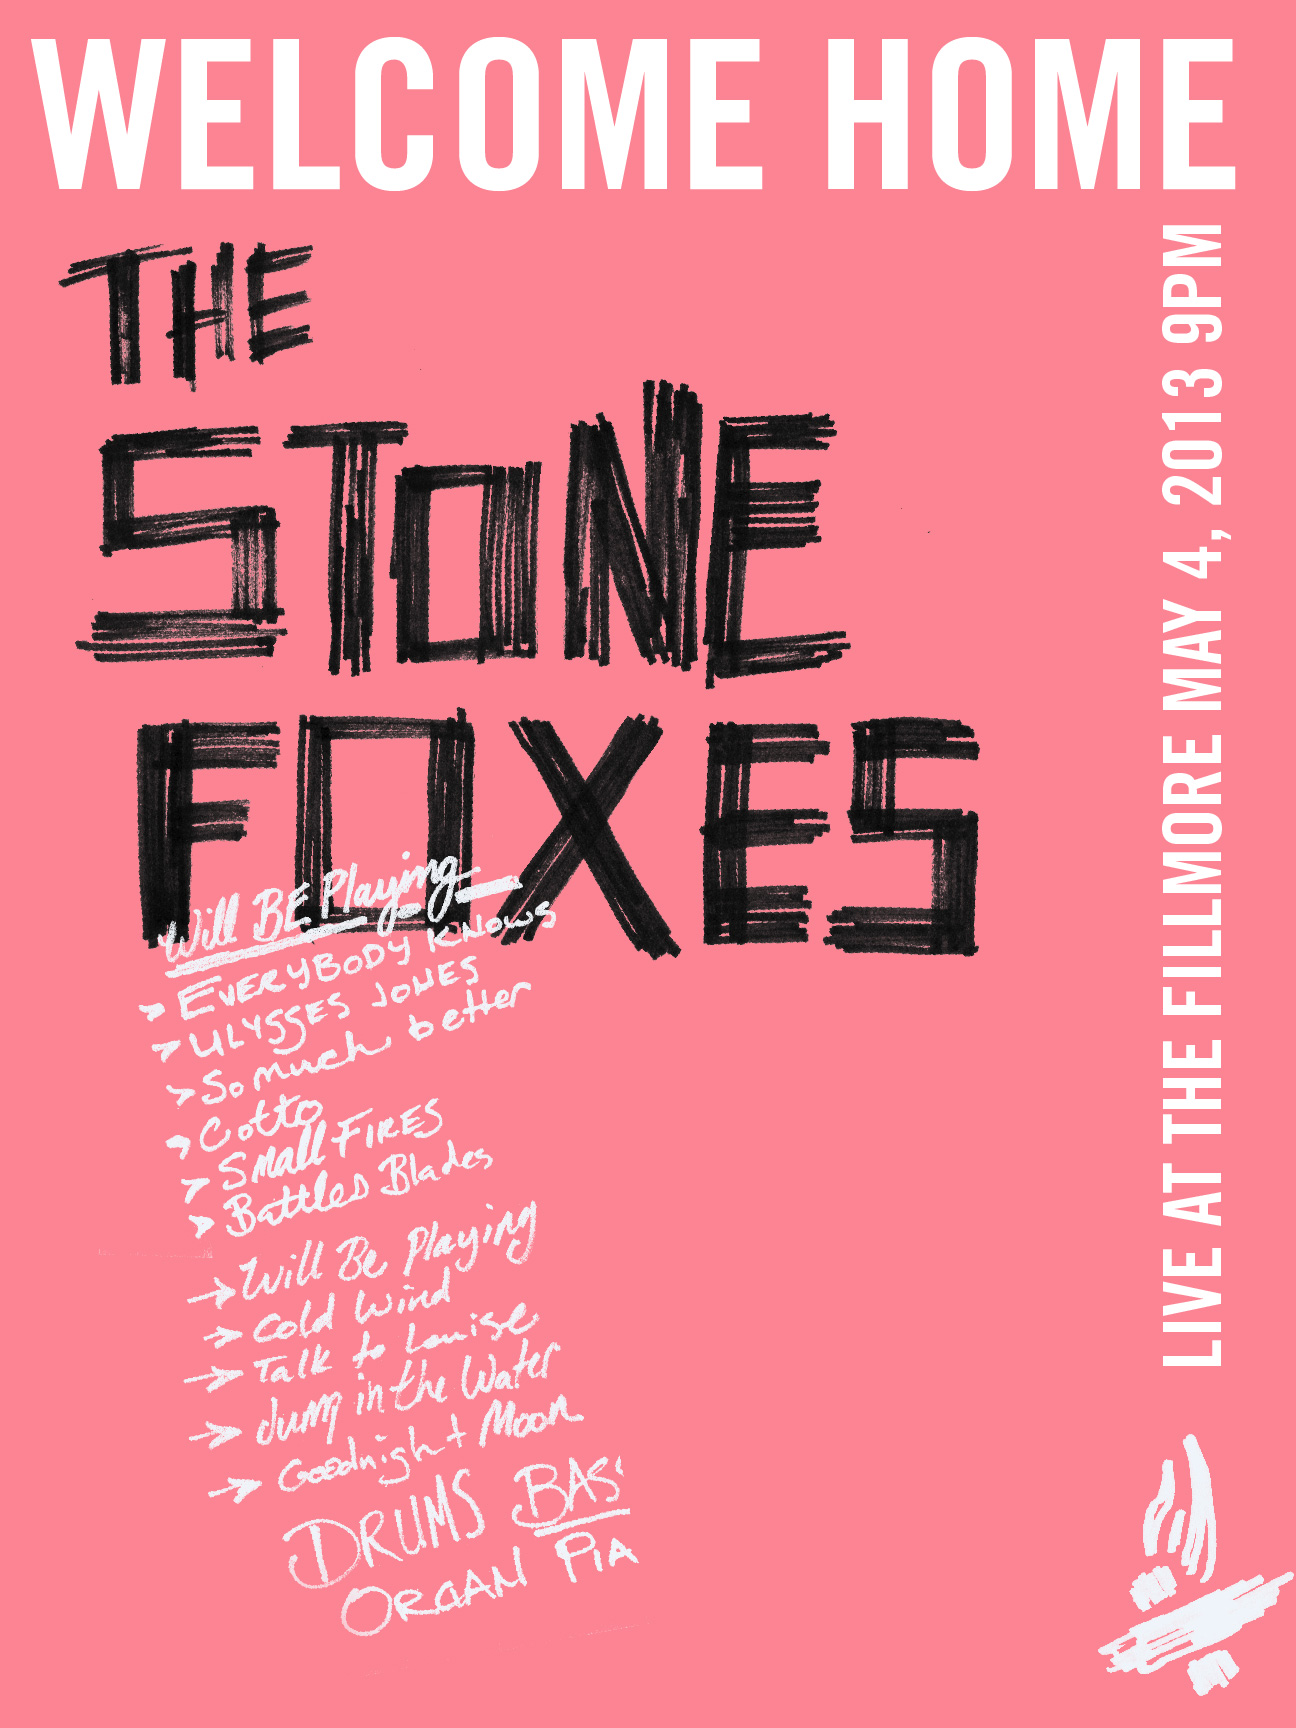 The Stone Foxes - A Homecoming Poster - image 15 - student project